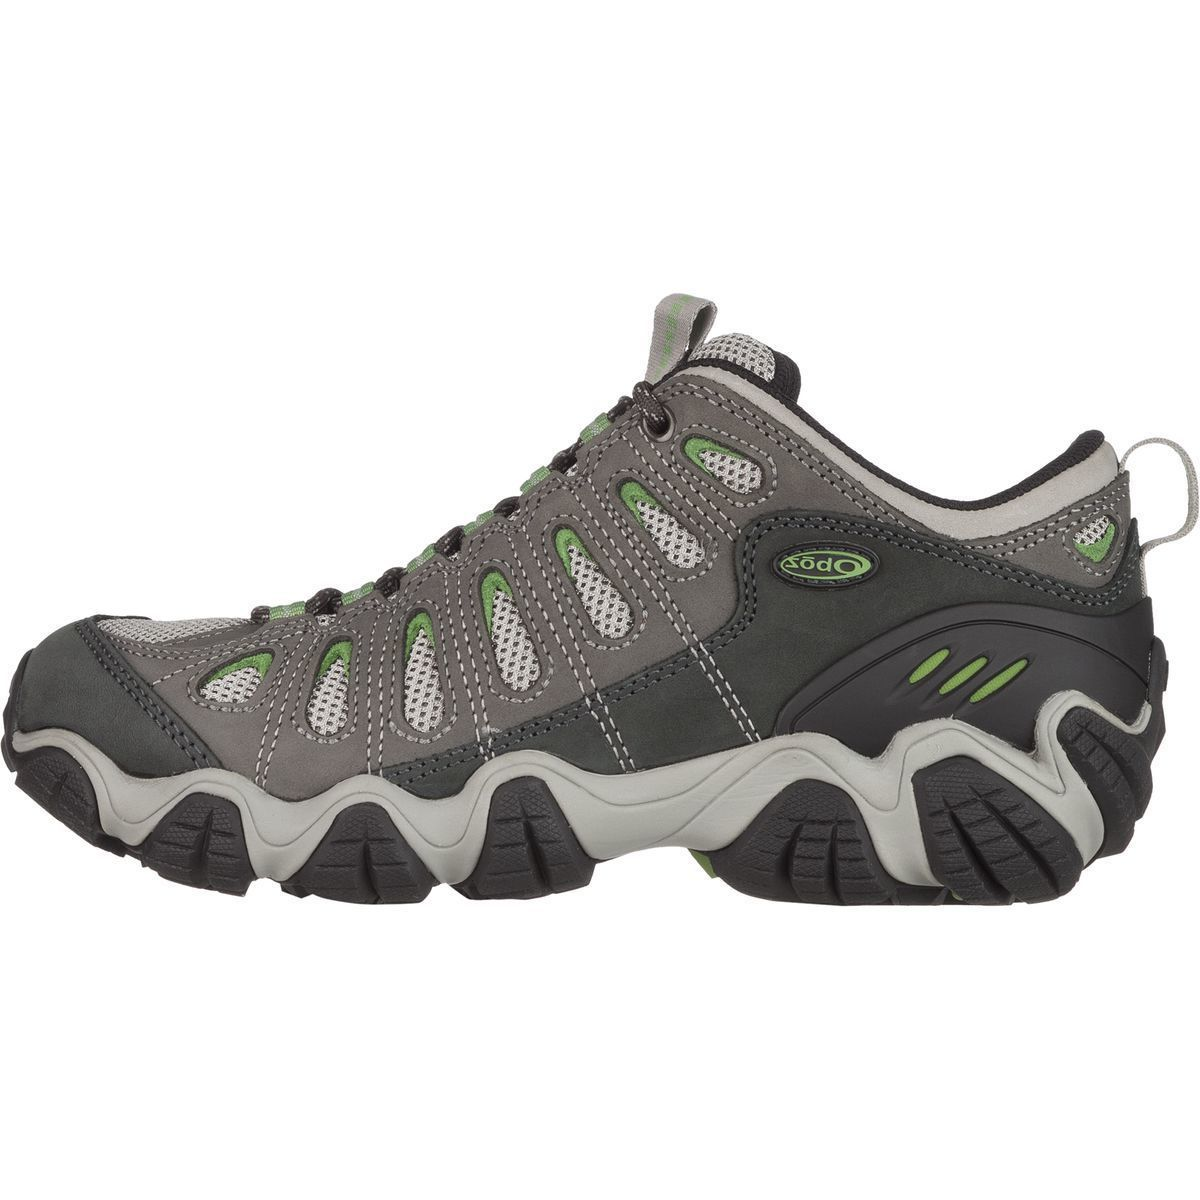 Oboz Sawtooth Hiking Shoe - Women's